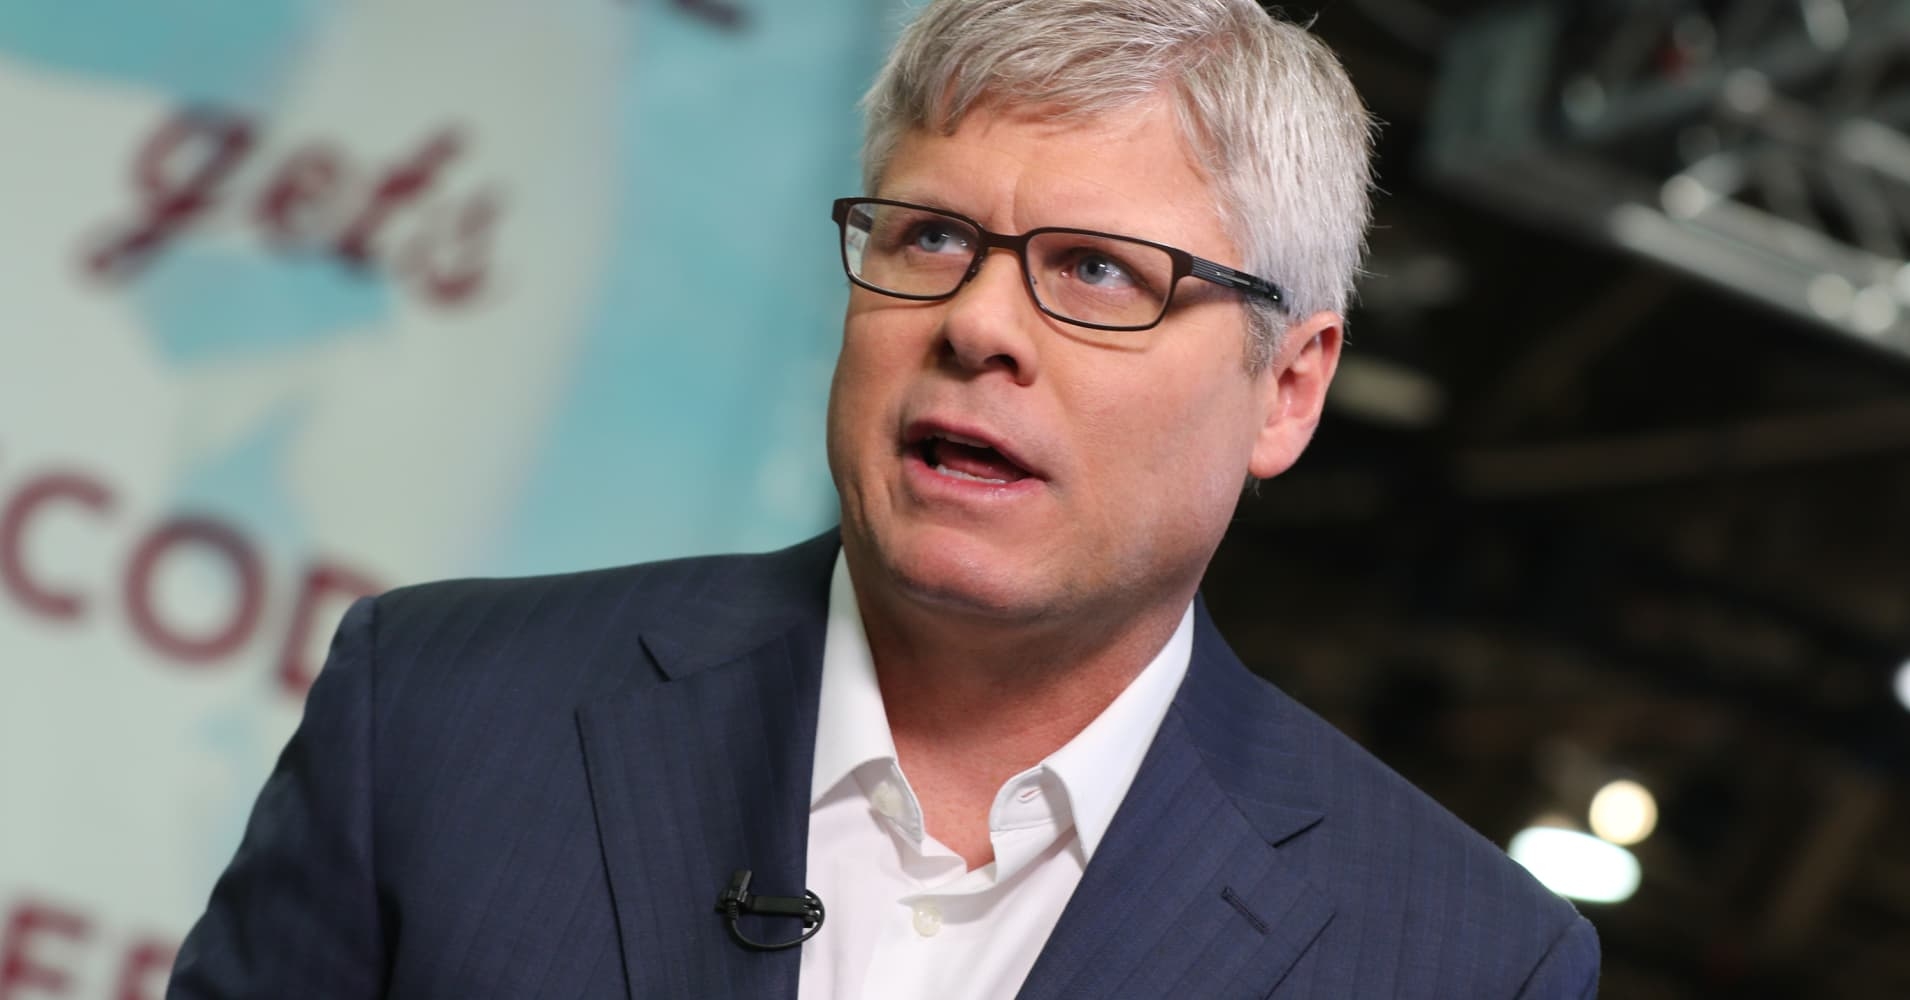 Qualcomm CEO: Globalization is still 'good for America'